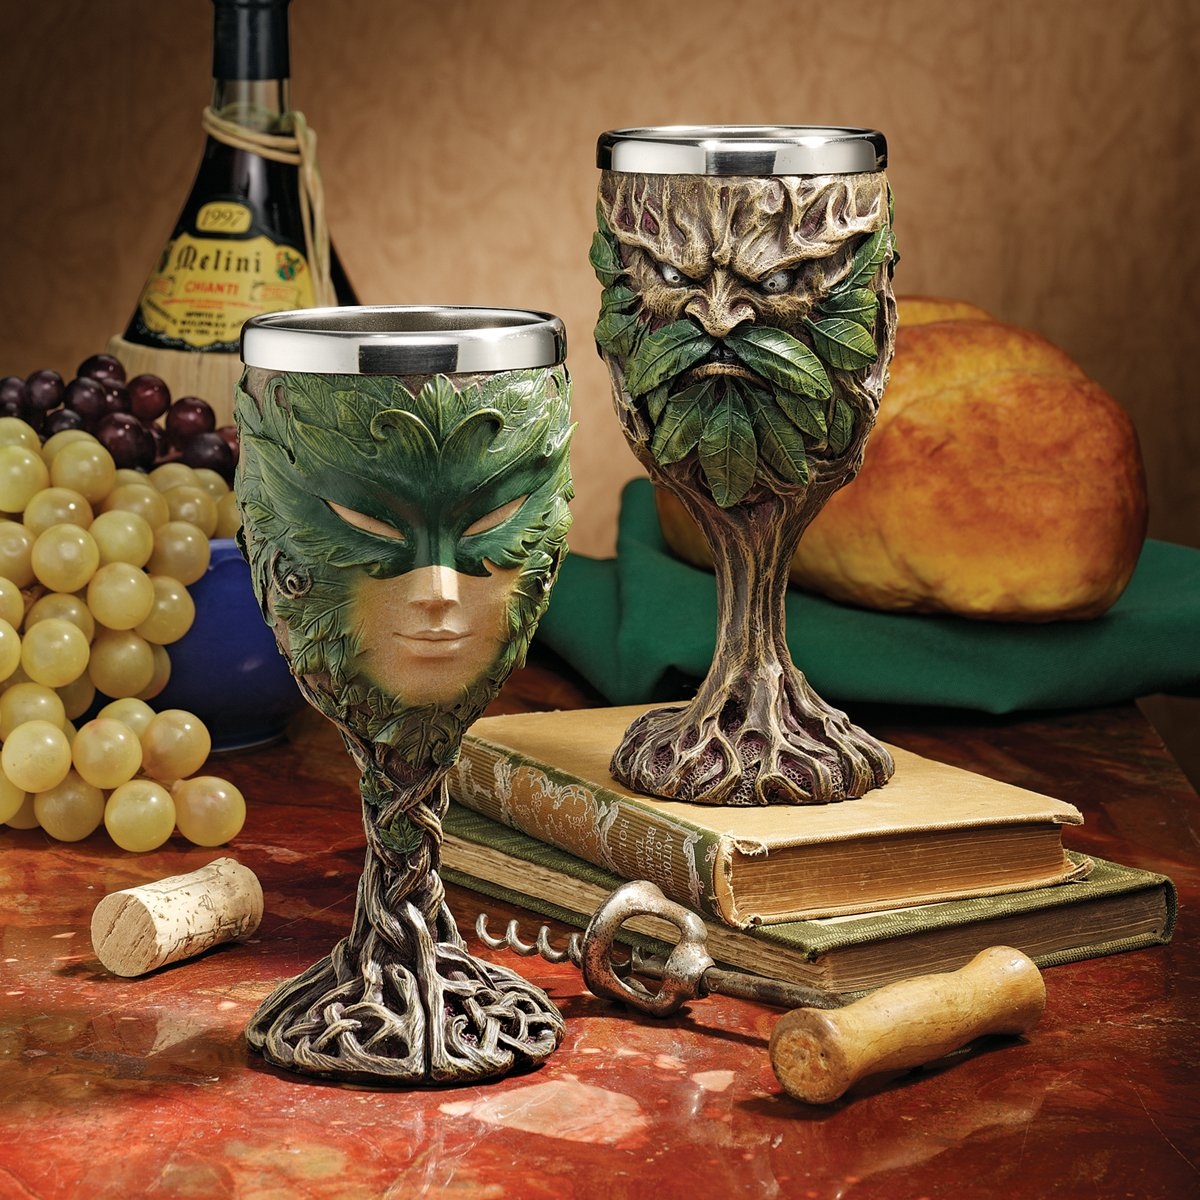 Design Toscano Forest Spirits Greenman Goblet Collection: Grendal The Green & Lady of The Leaf by Design Toscano (Image #2)